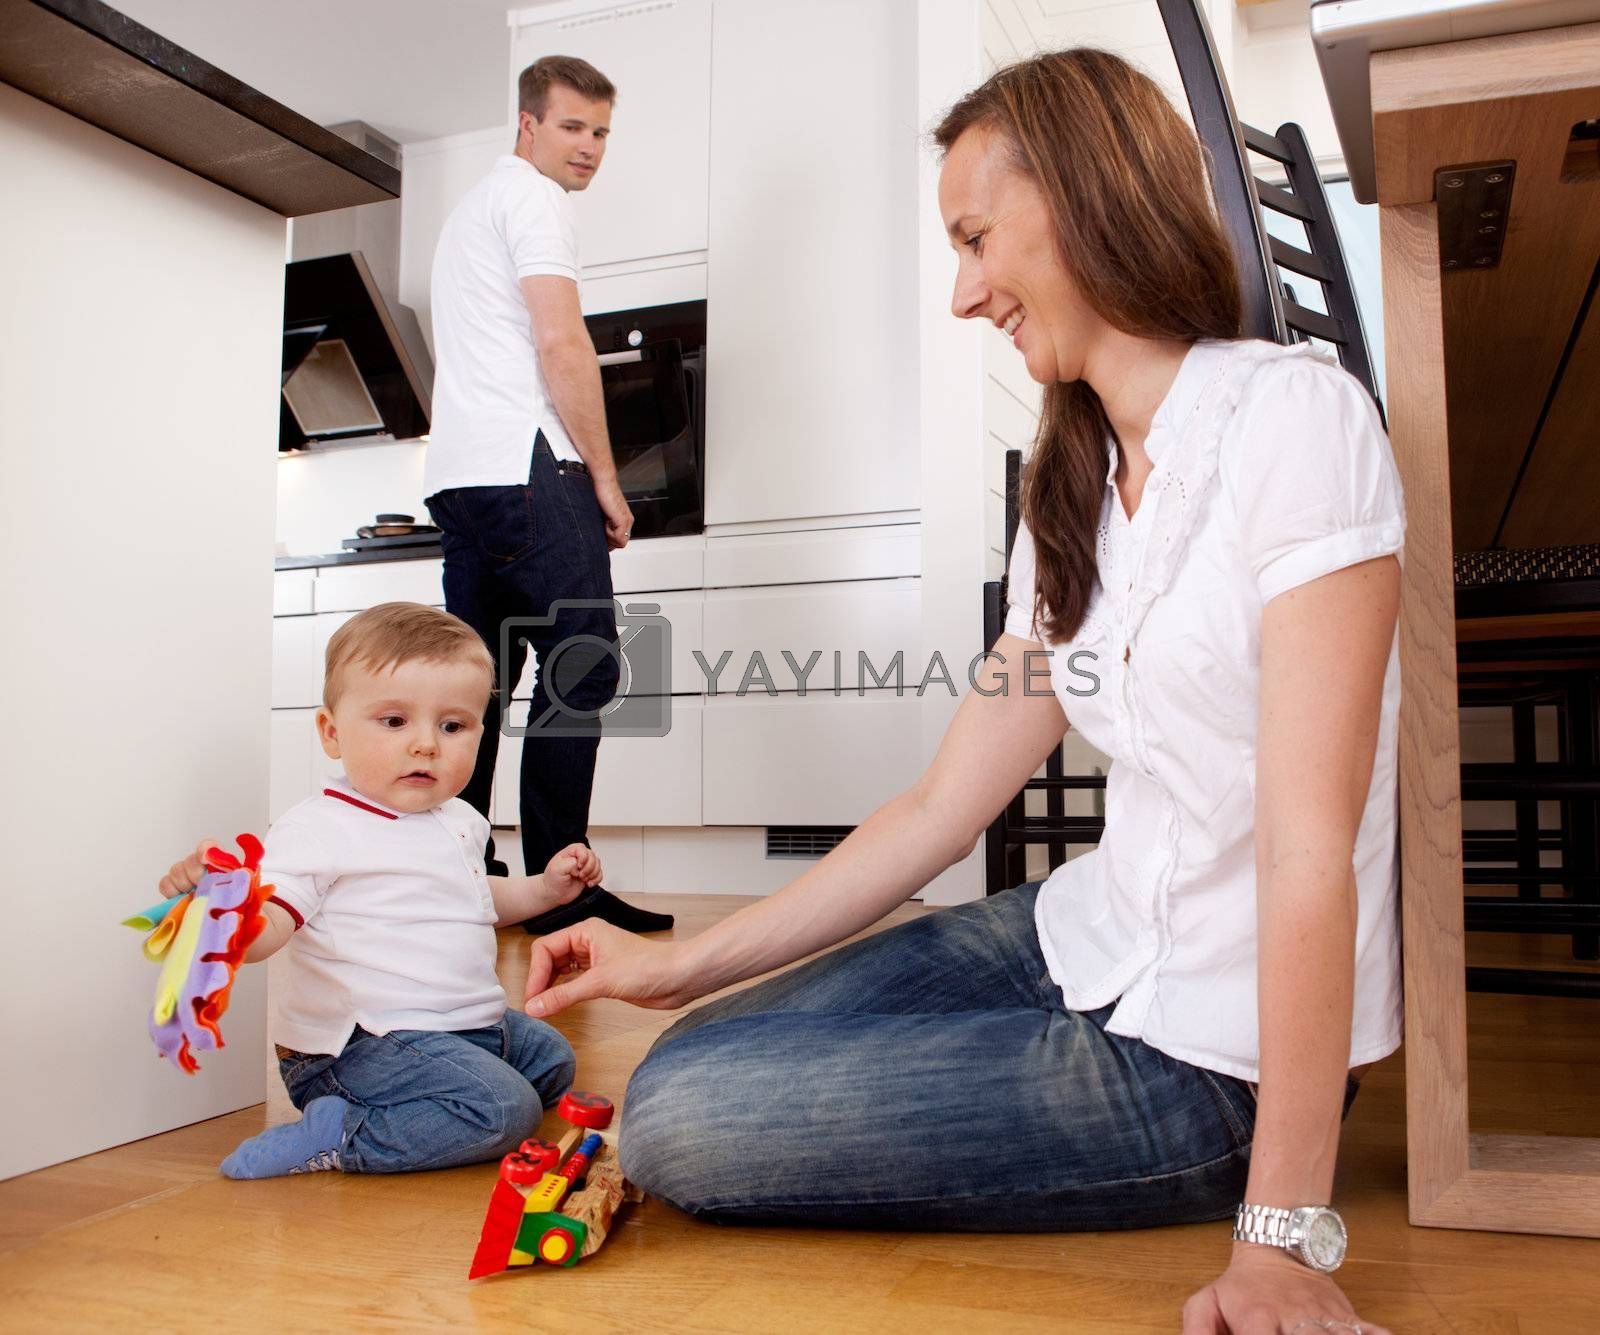 Mother playing with son on kitchen floor with father in background